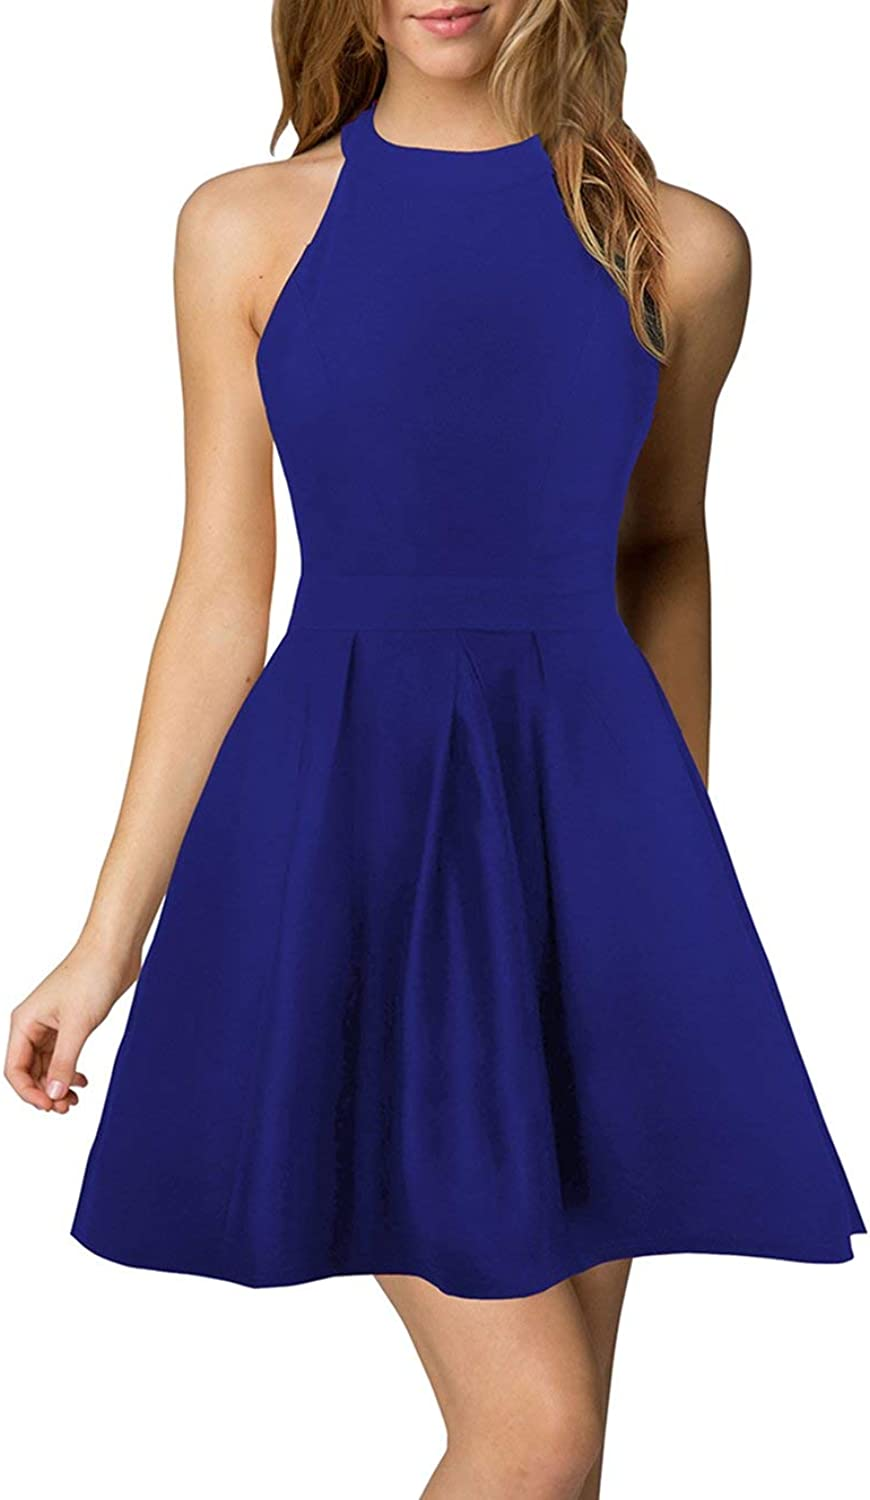 Berydress Women's Halter Neck Backless Royal bluee Cocktail Party Dress (US8, 6019_Royal bluee)